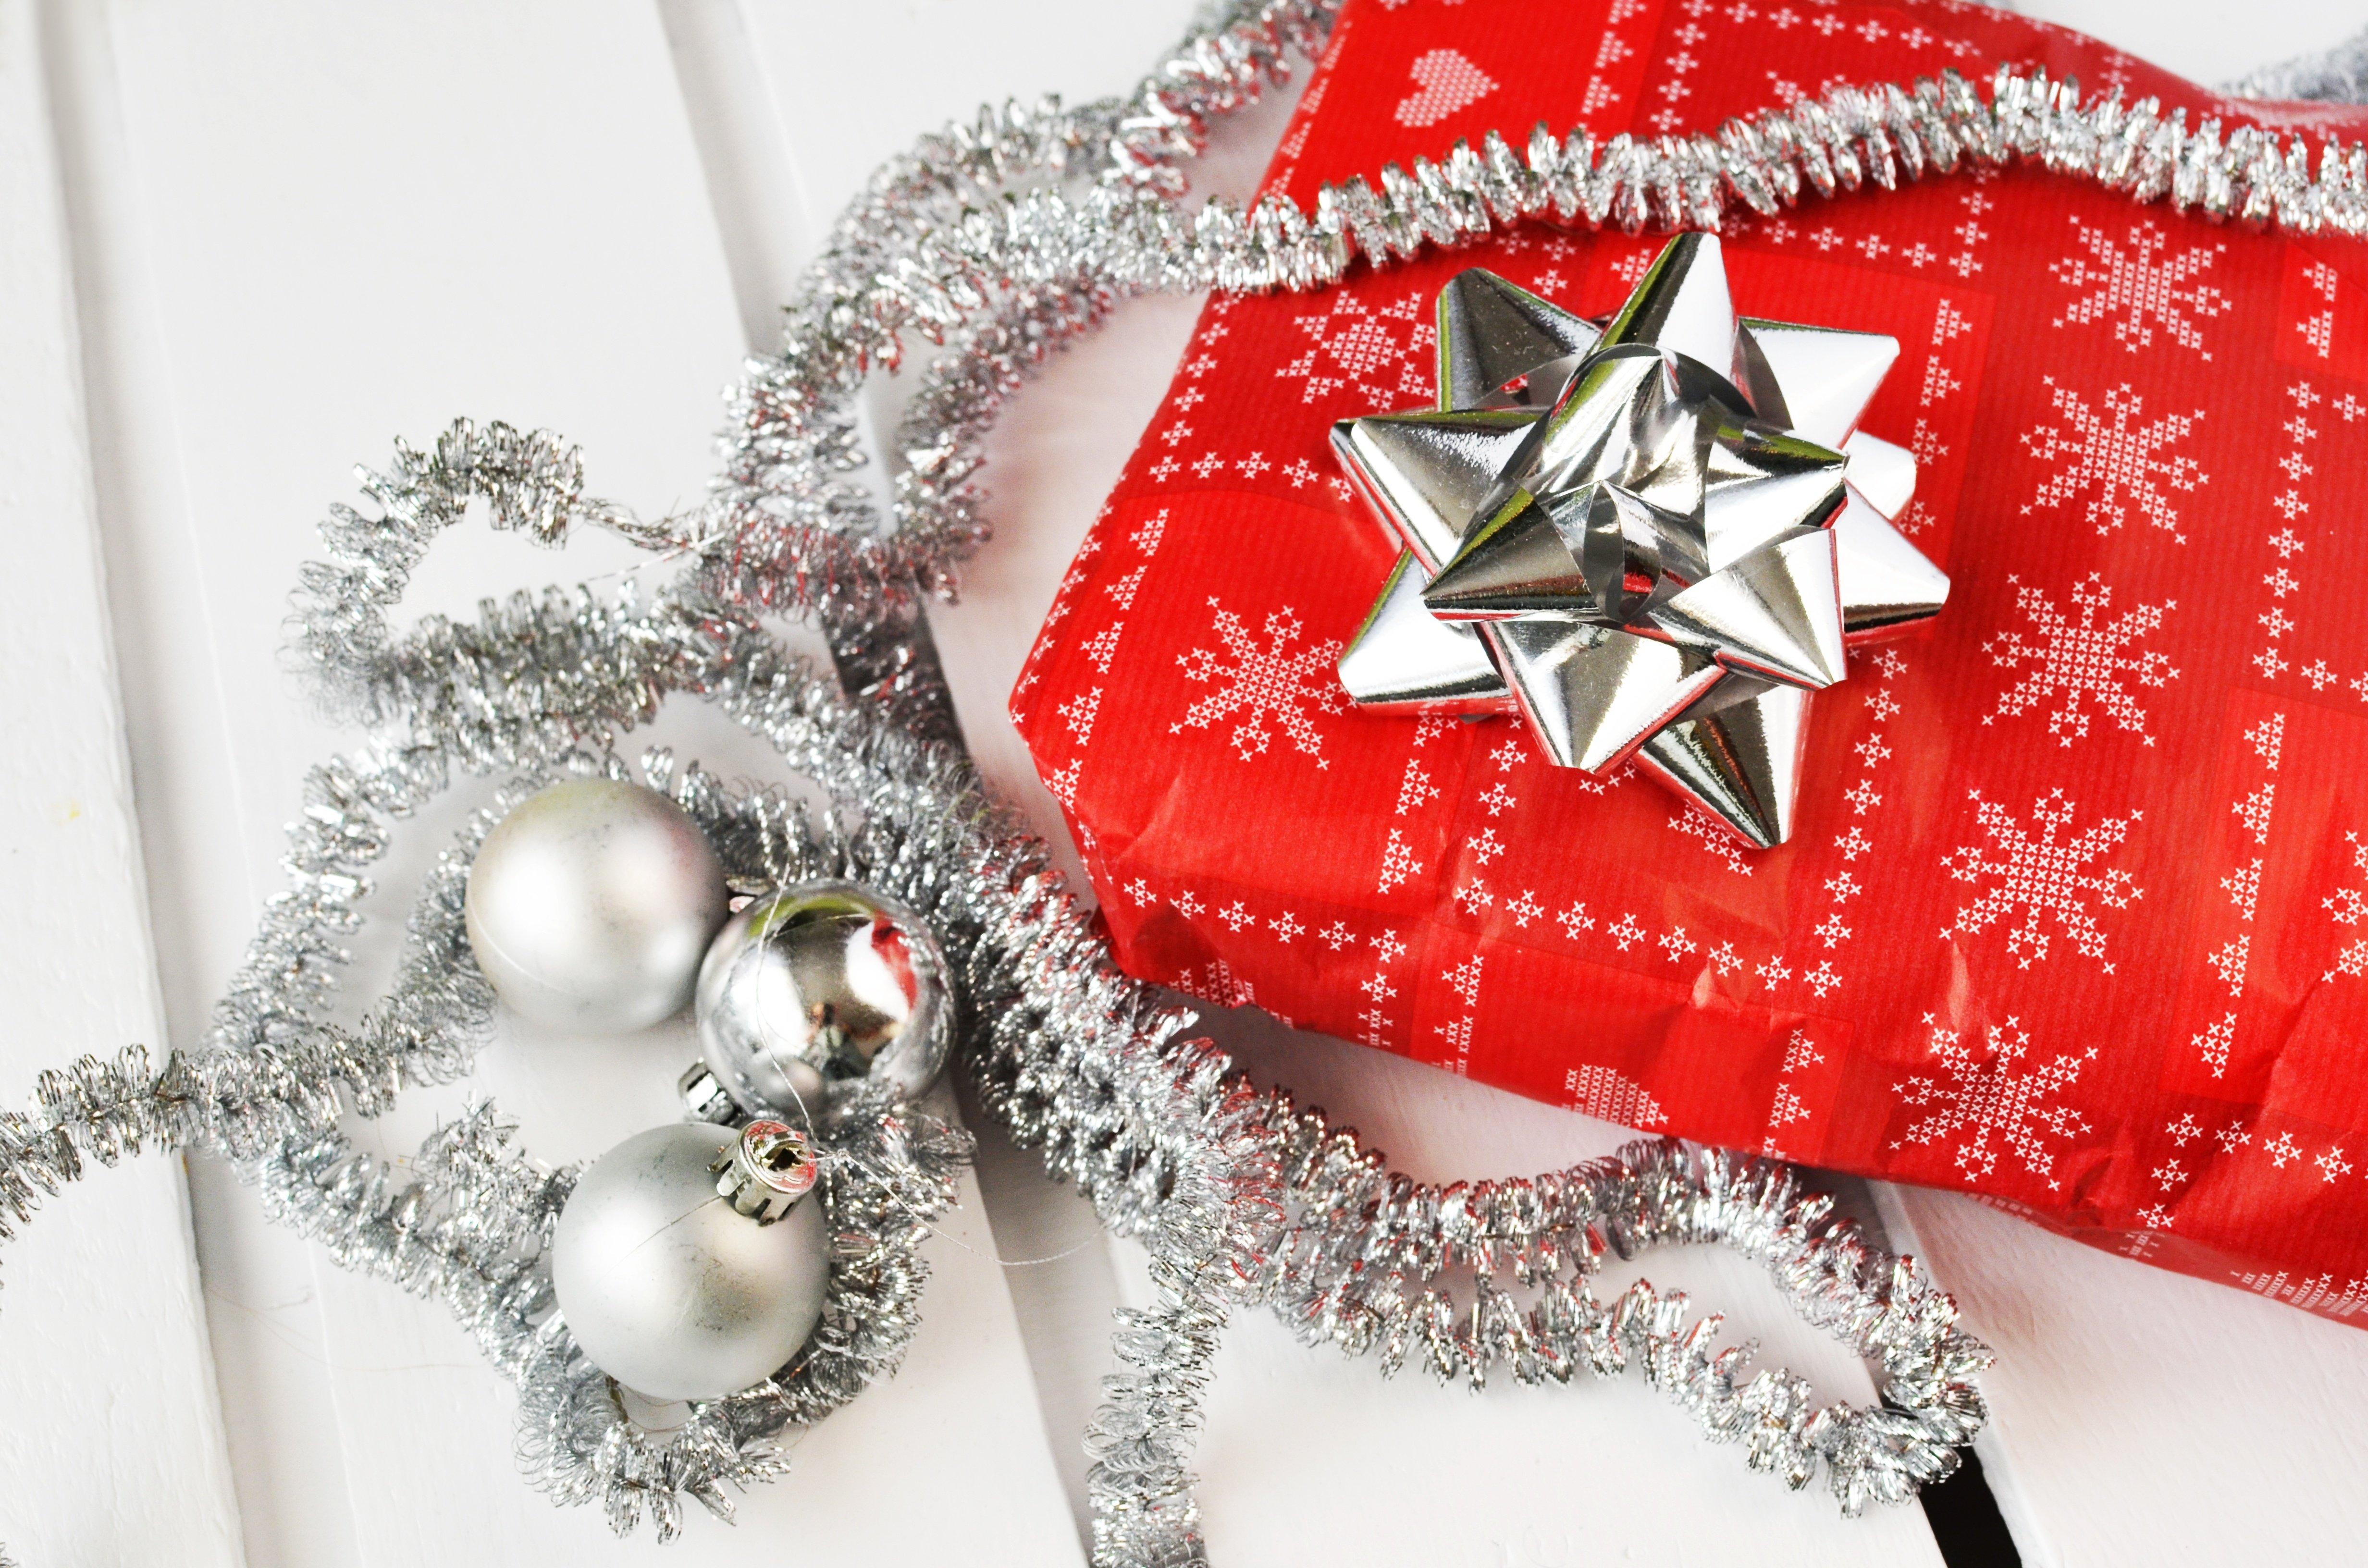 holiday wrapping illustrates article on holiday bonuses and small business tax deductions